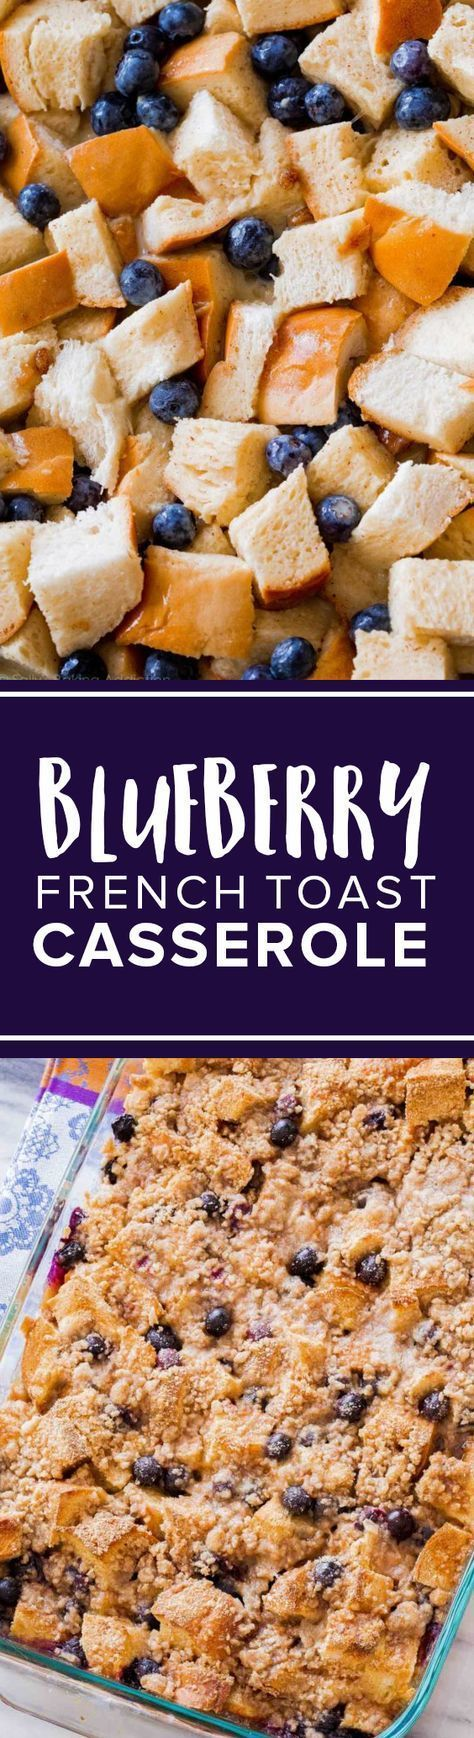 Make ahead overnight blueberry french toast casserole bake for breakfast or brunch in a hurry! Delicious easy brunch recipe on http://sallysbakingaddiction.com/2015/03/25/unbelievable-blueberry-french-toast-casserole/